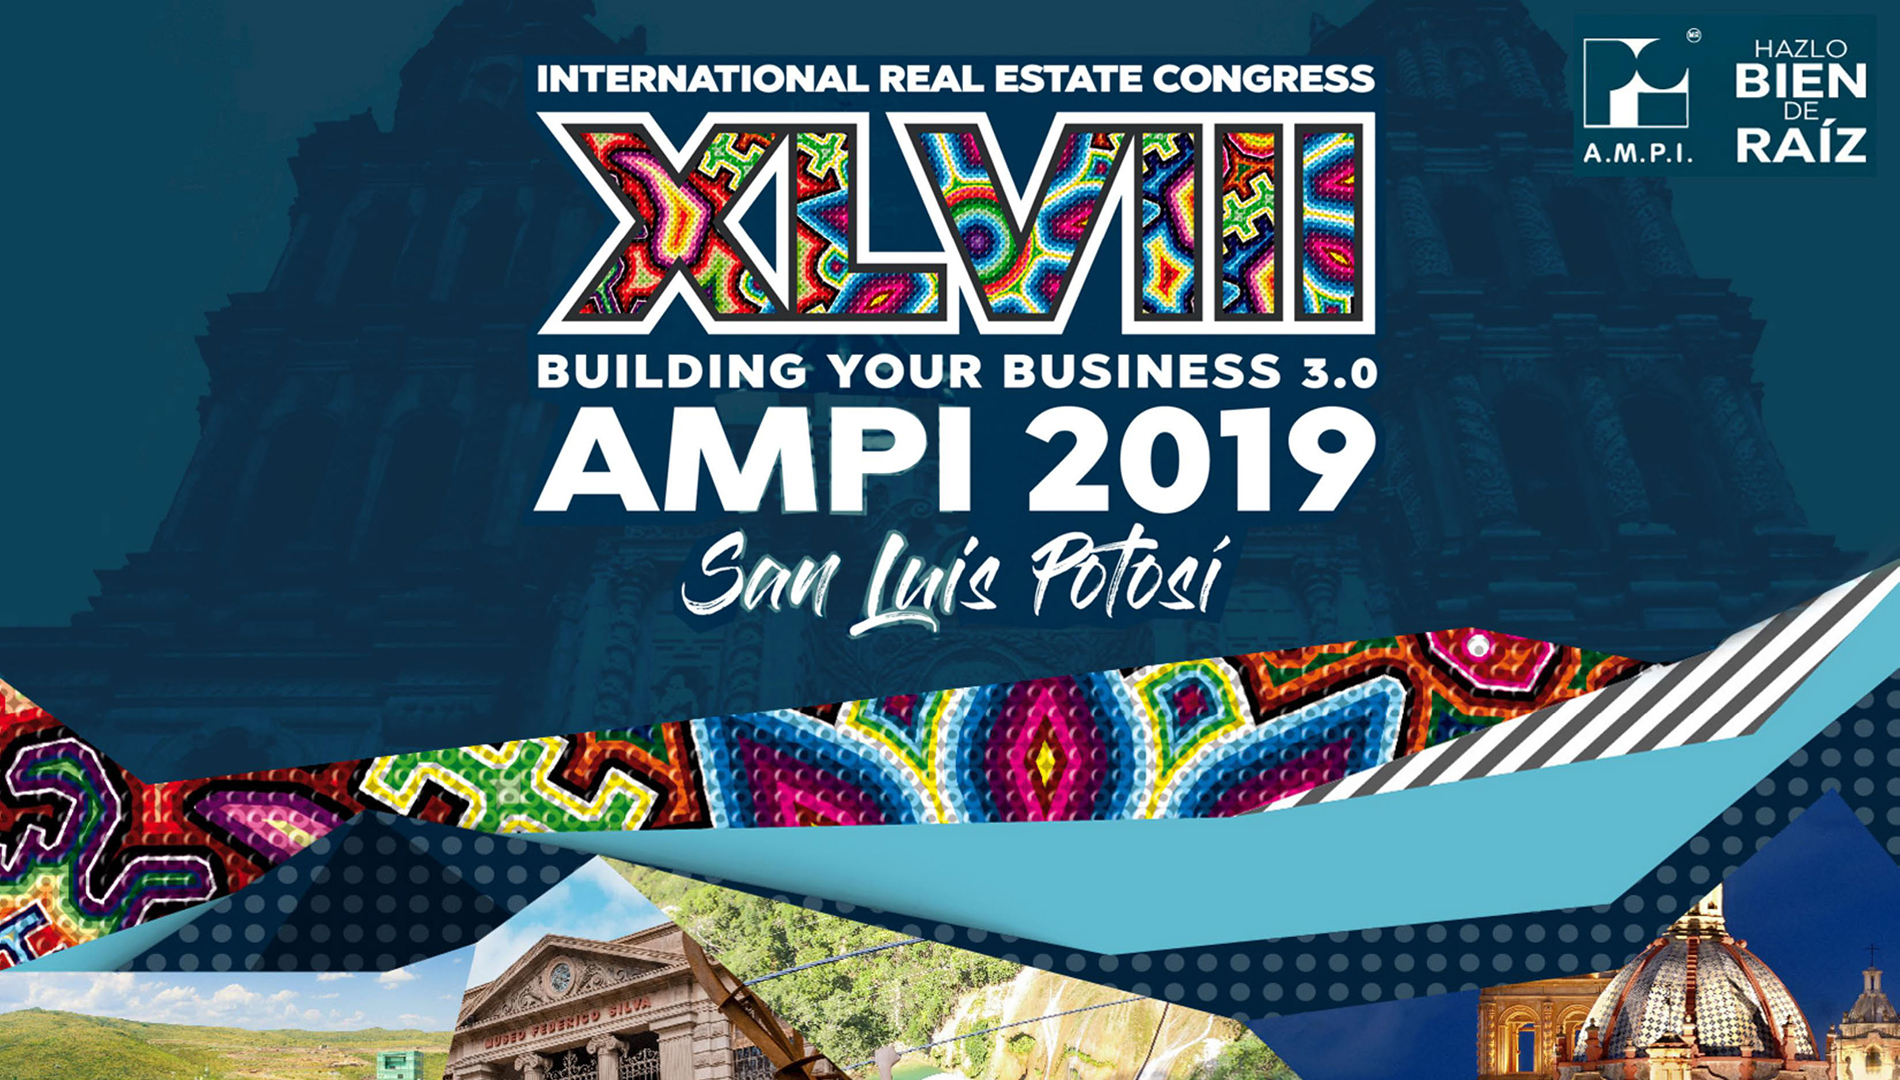 International Real Estate Congress image